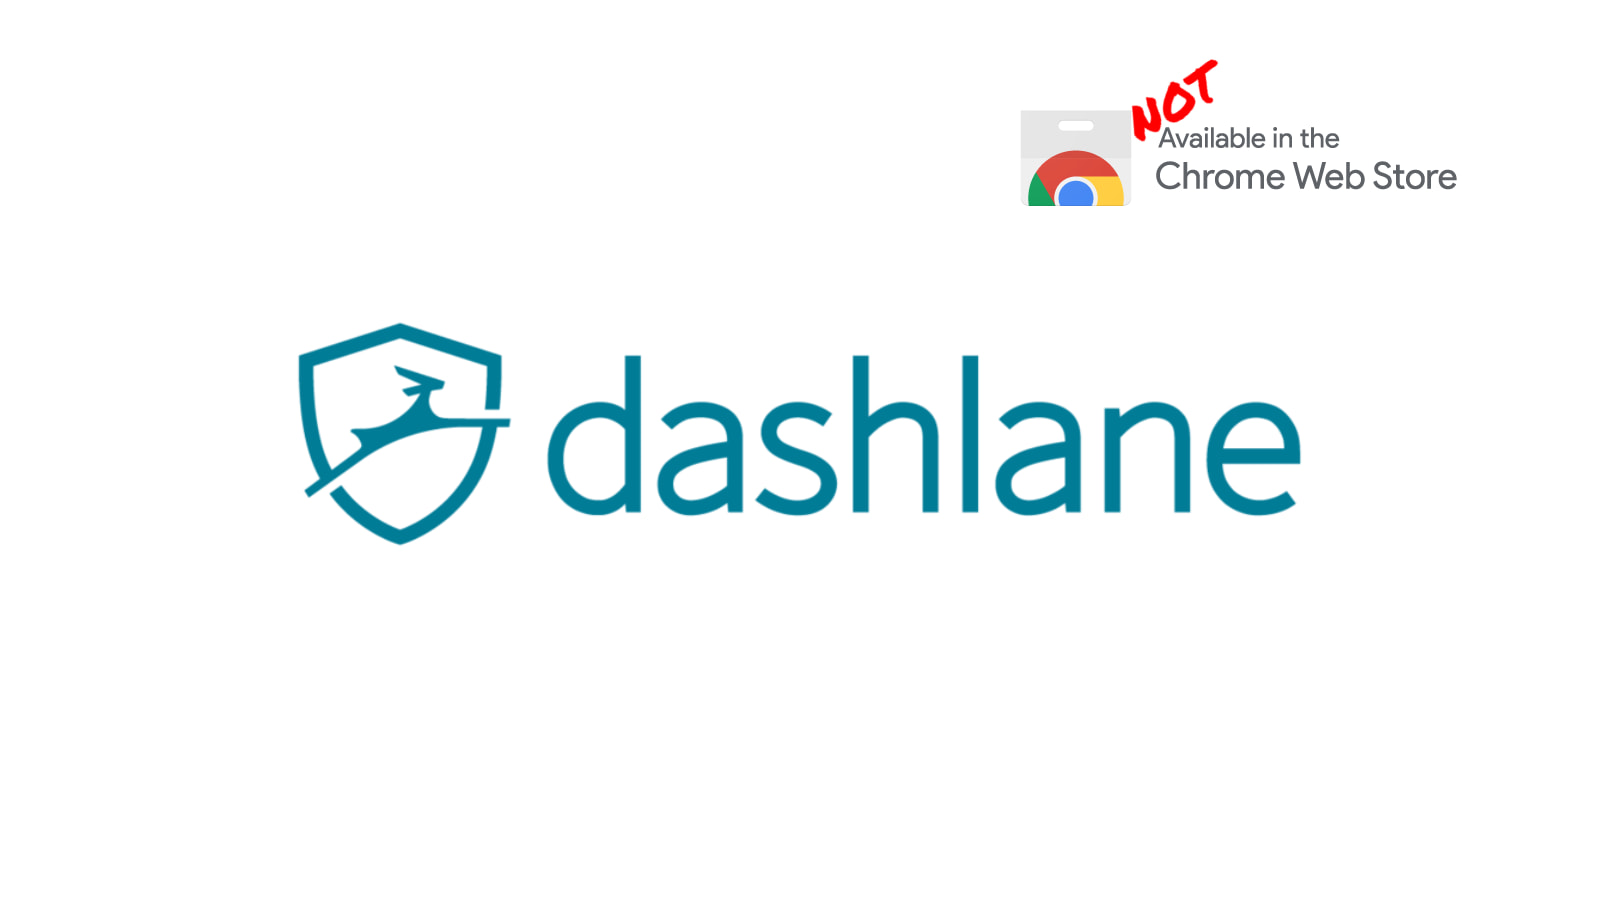 Dashlane Password Manager has extension temporarily removed from Chrome Web Store